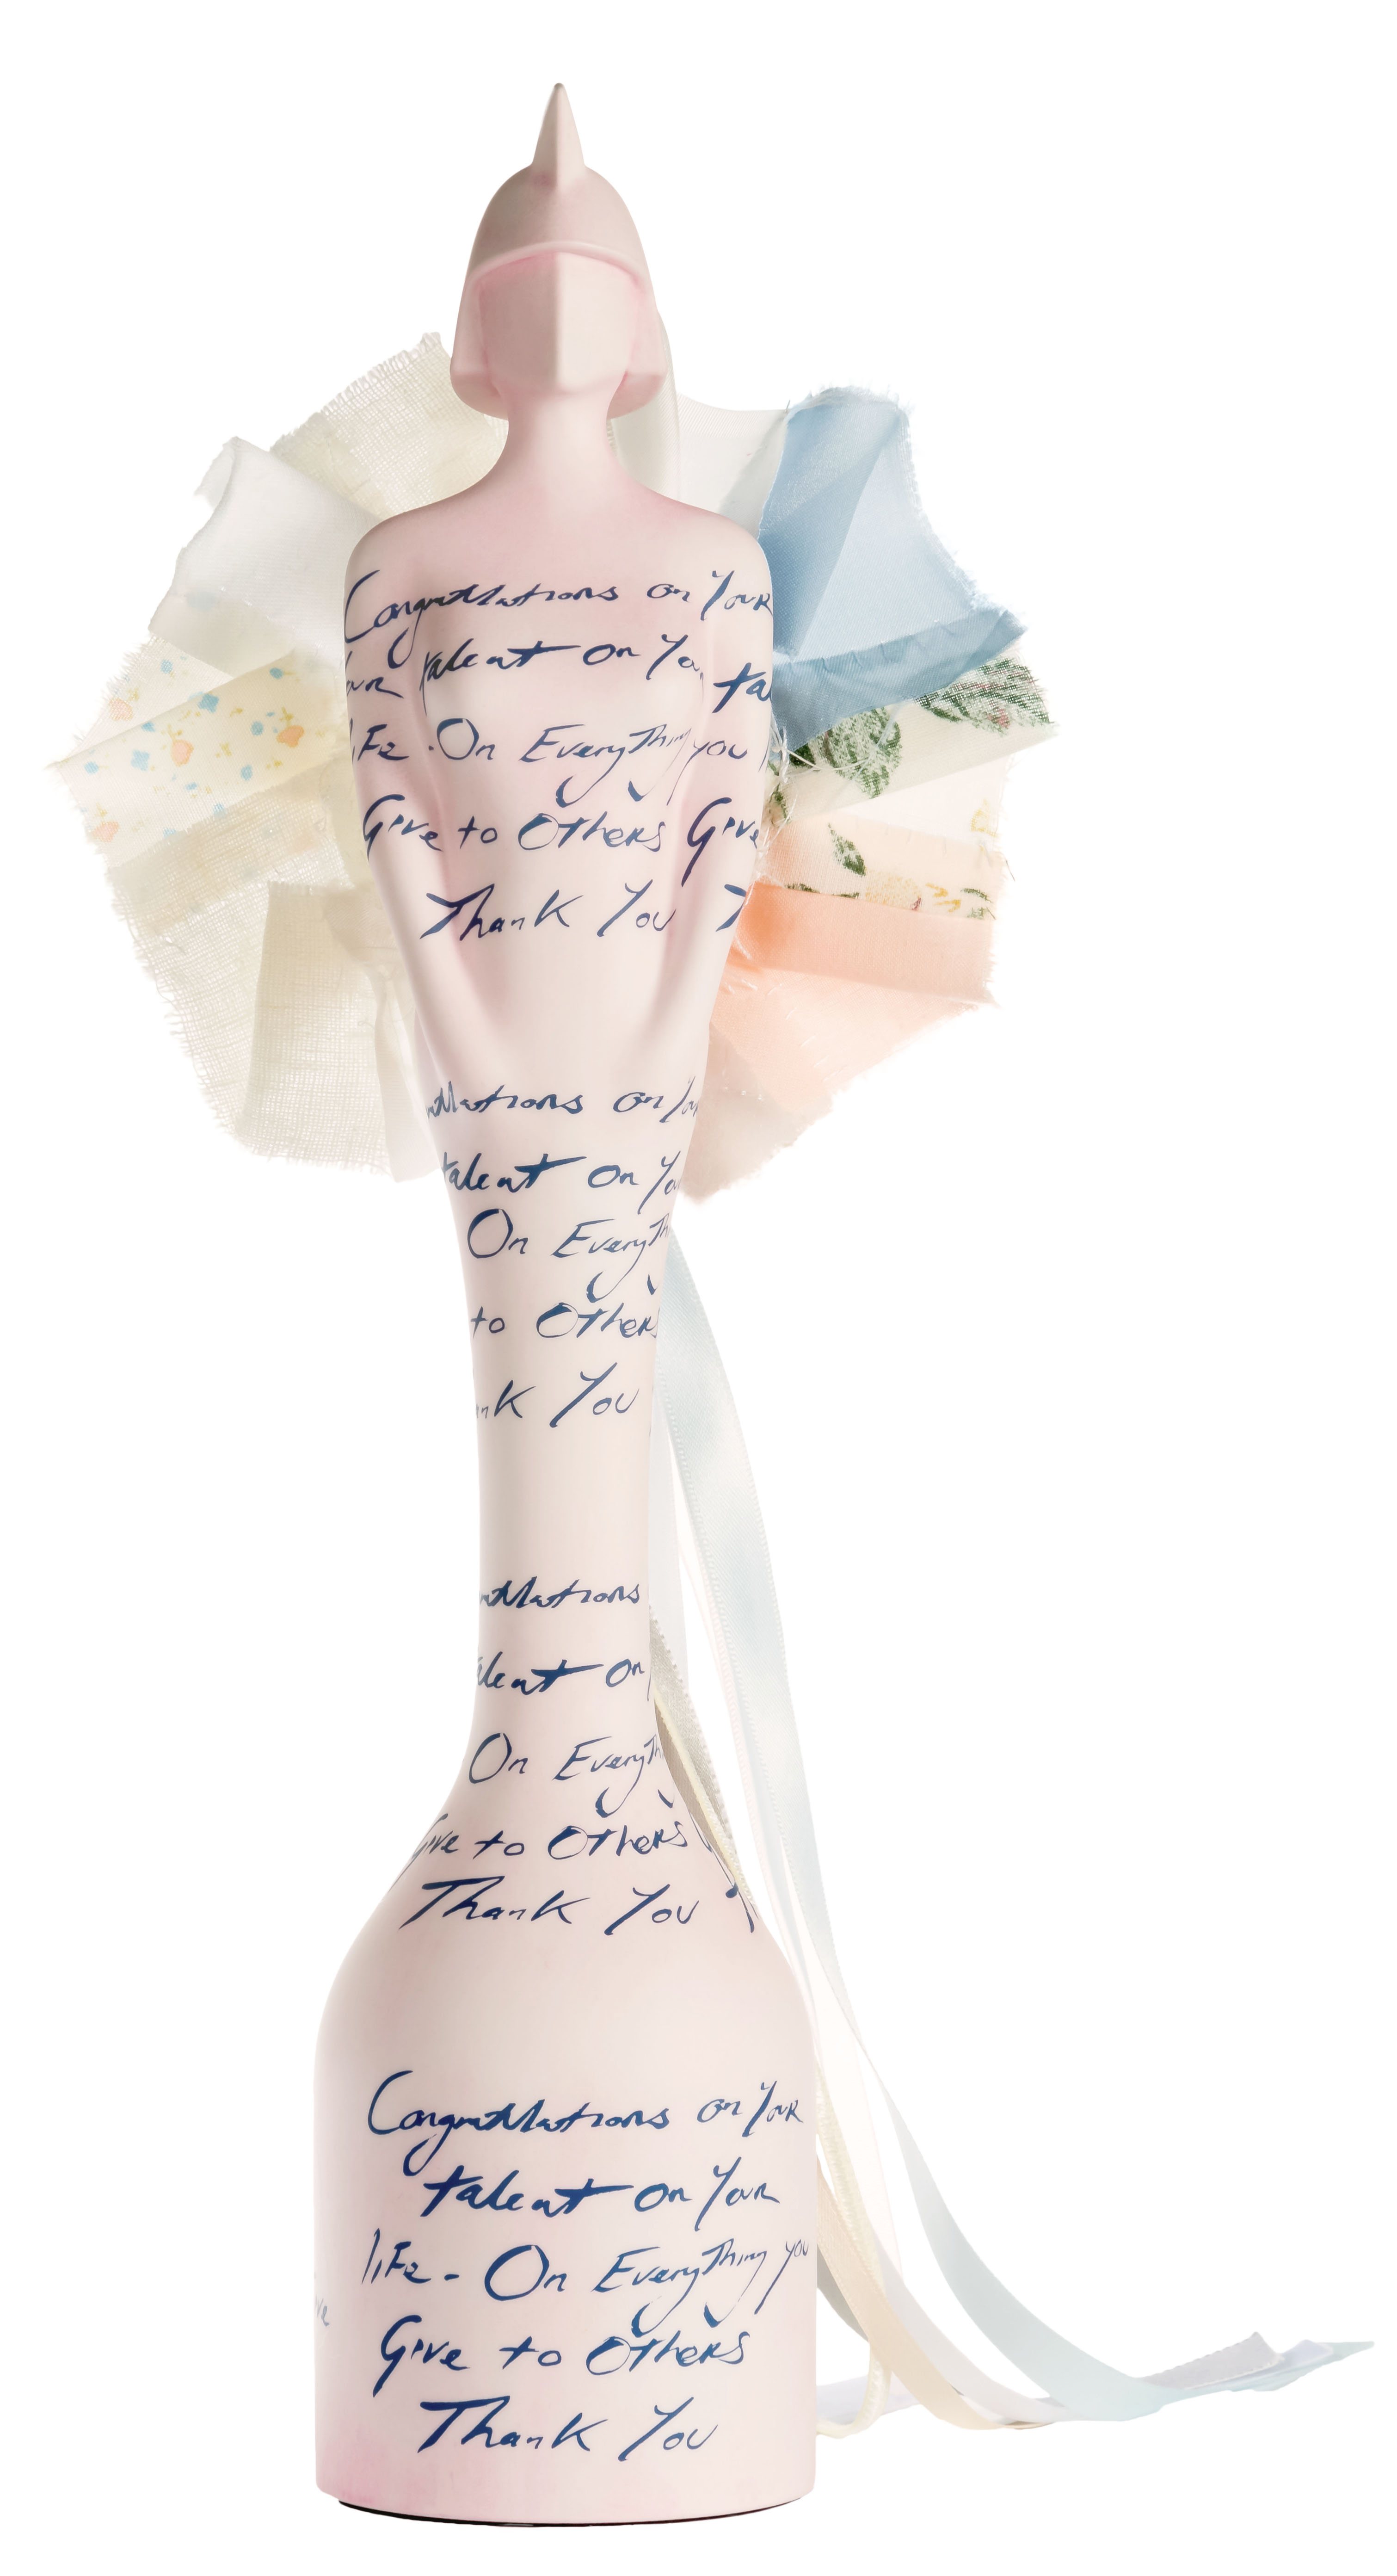 BRIT Award Trophy 2015 designed by Tracey Emin. Pic: DawBell